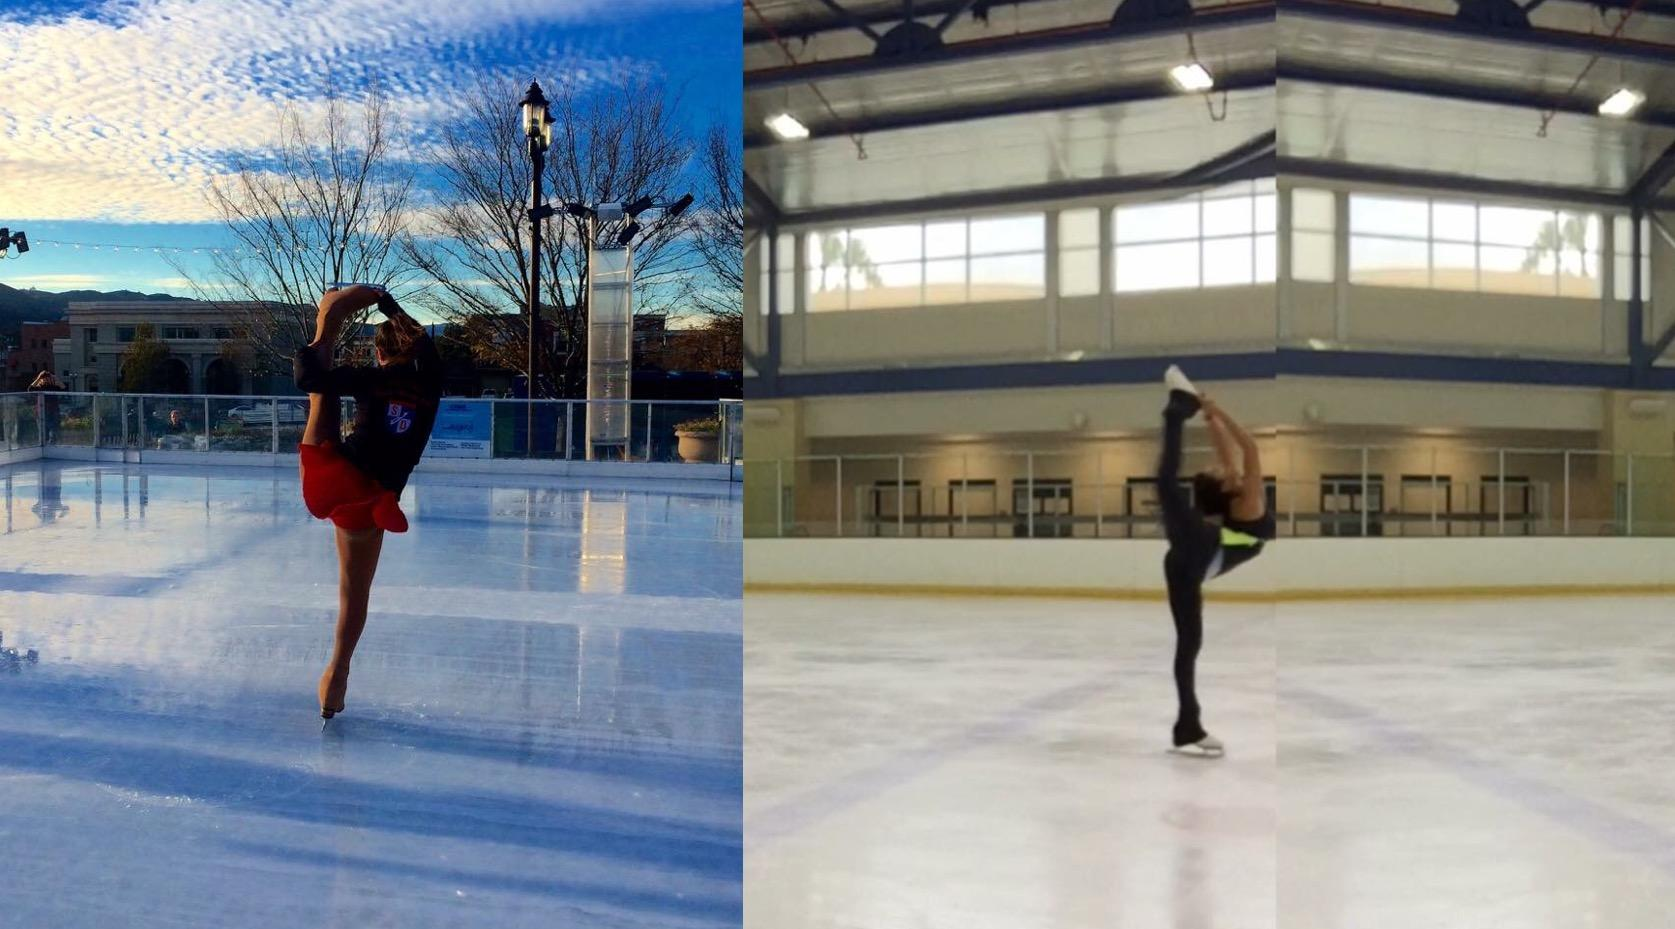 Shantal Bottero Velasco '17 rehearses for her next Disney princess performance on ice.